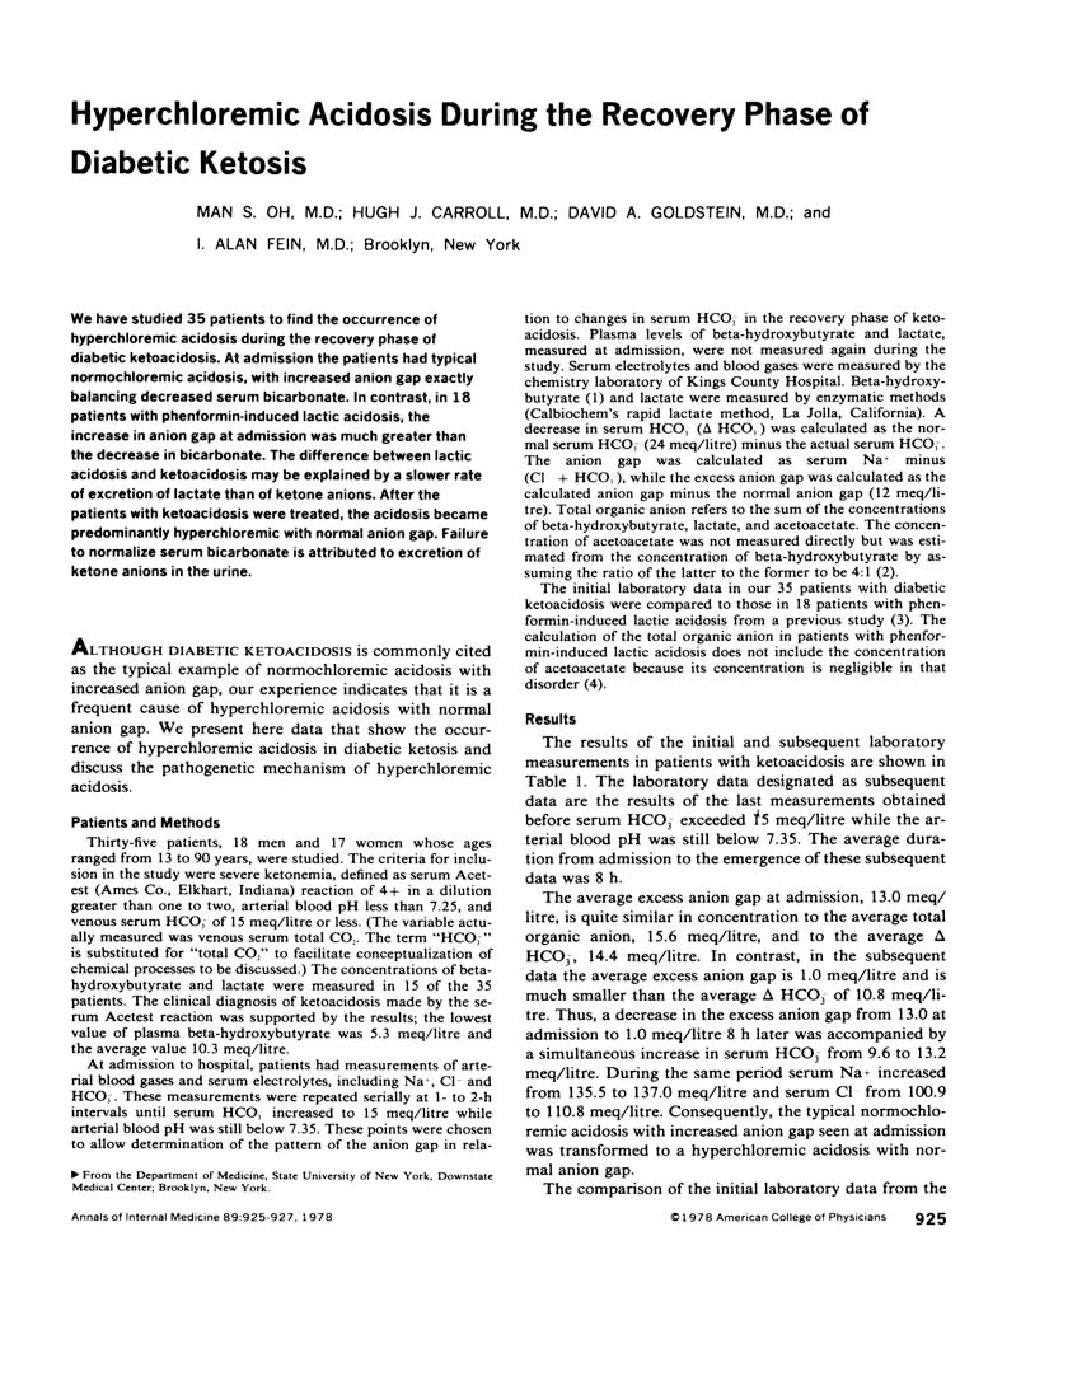 Hyperchloremic Acidosis During The Recovery Phase Of Diabetic Ketosis